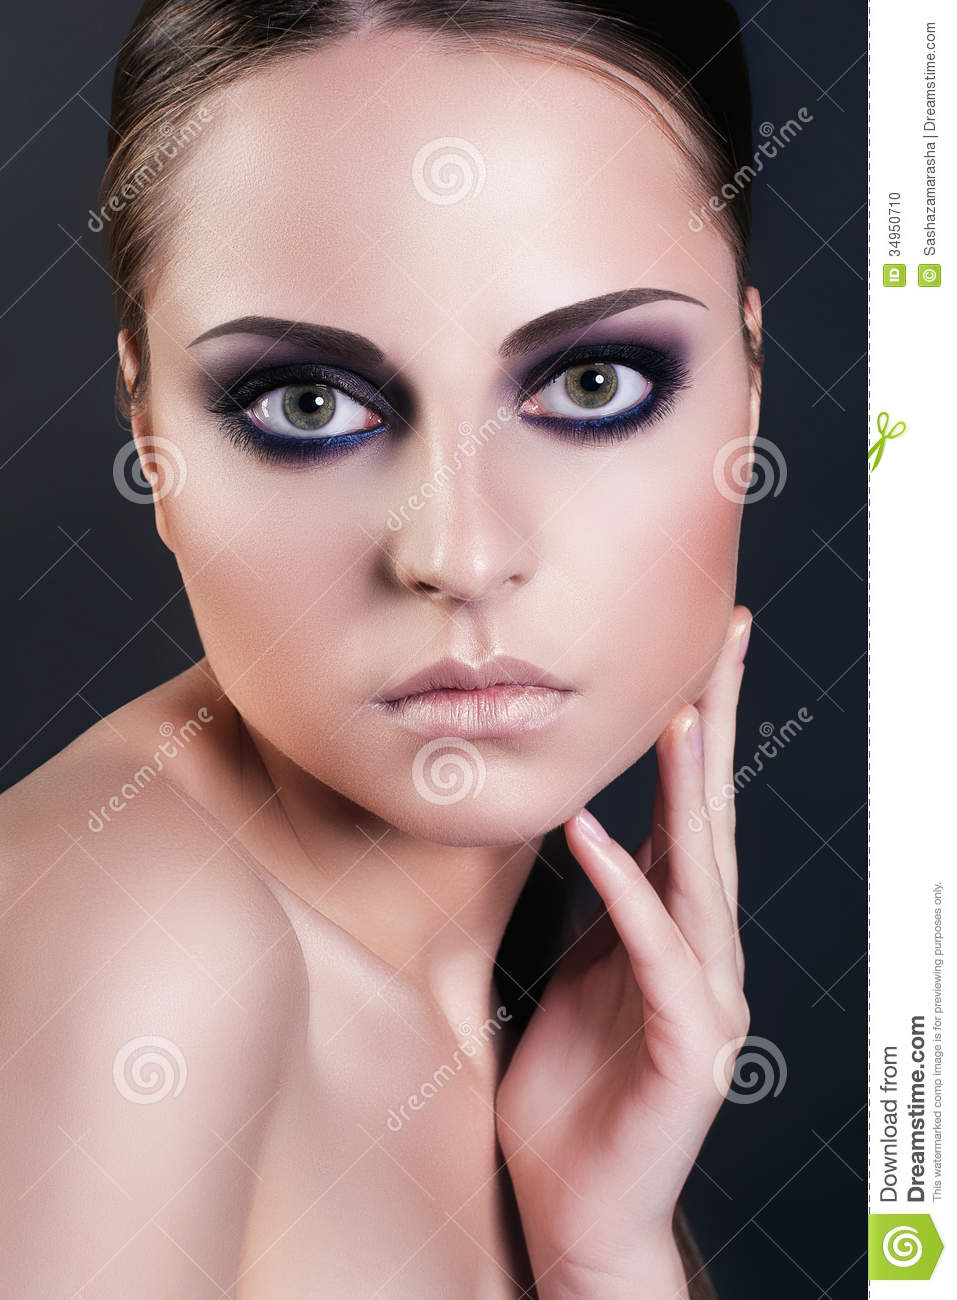 Fashion Beauty Portrait Of Attractive Young Woman With